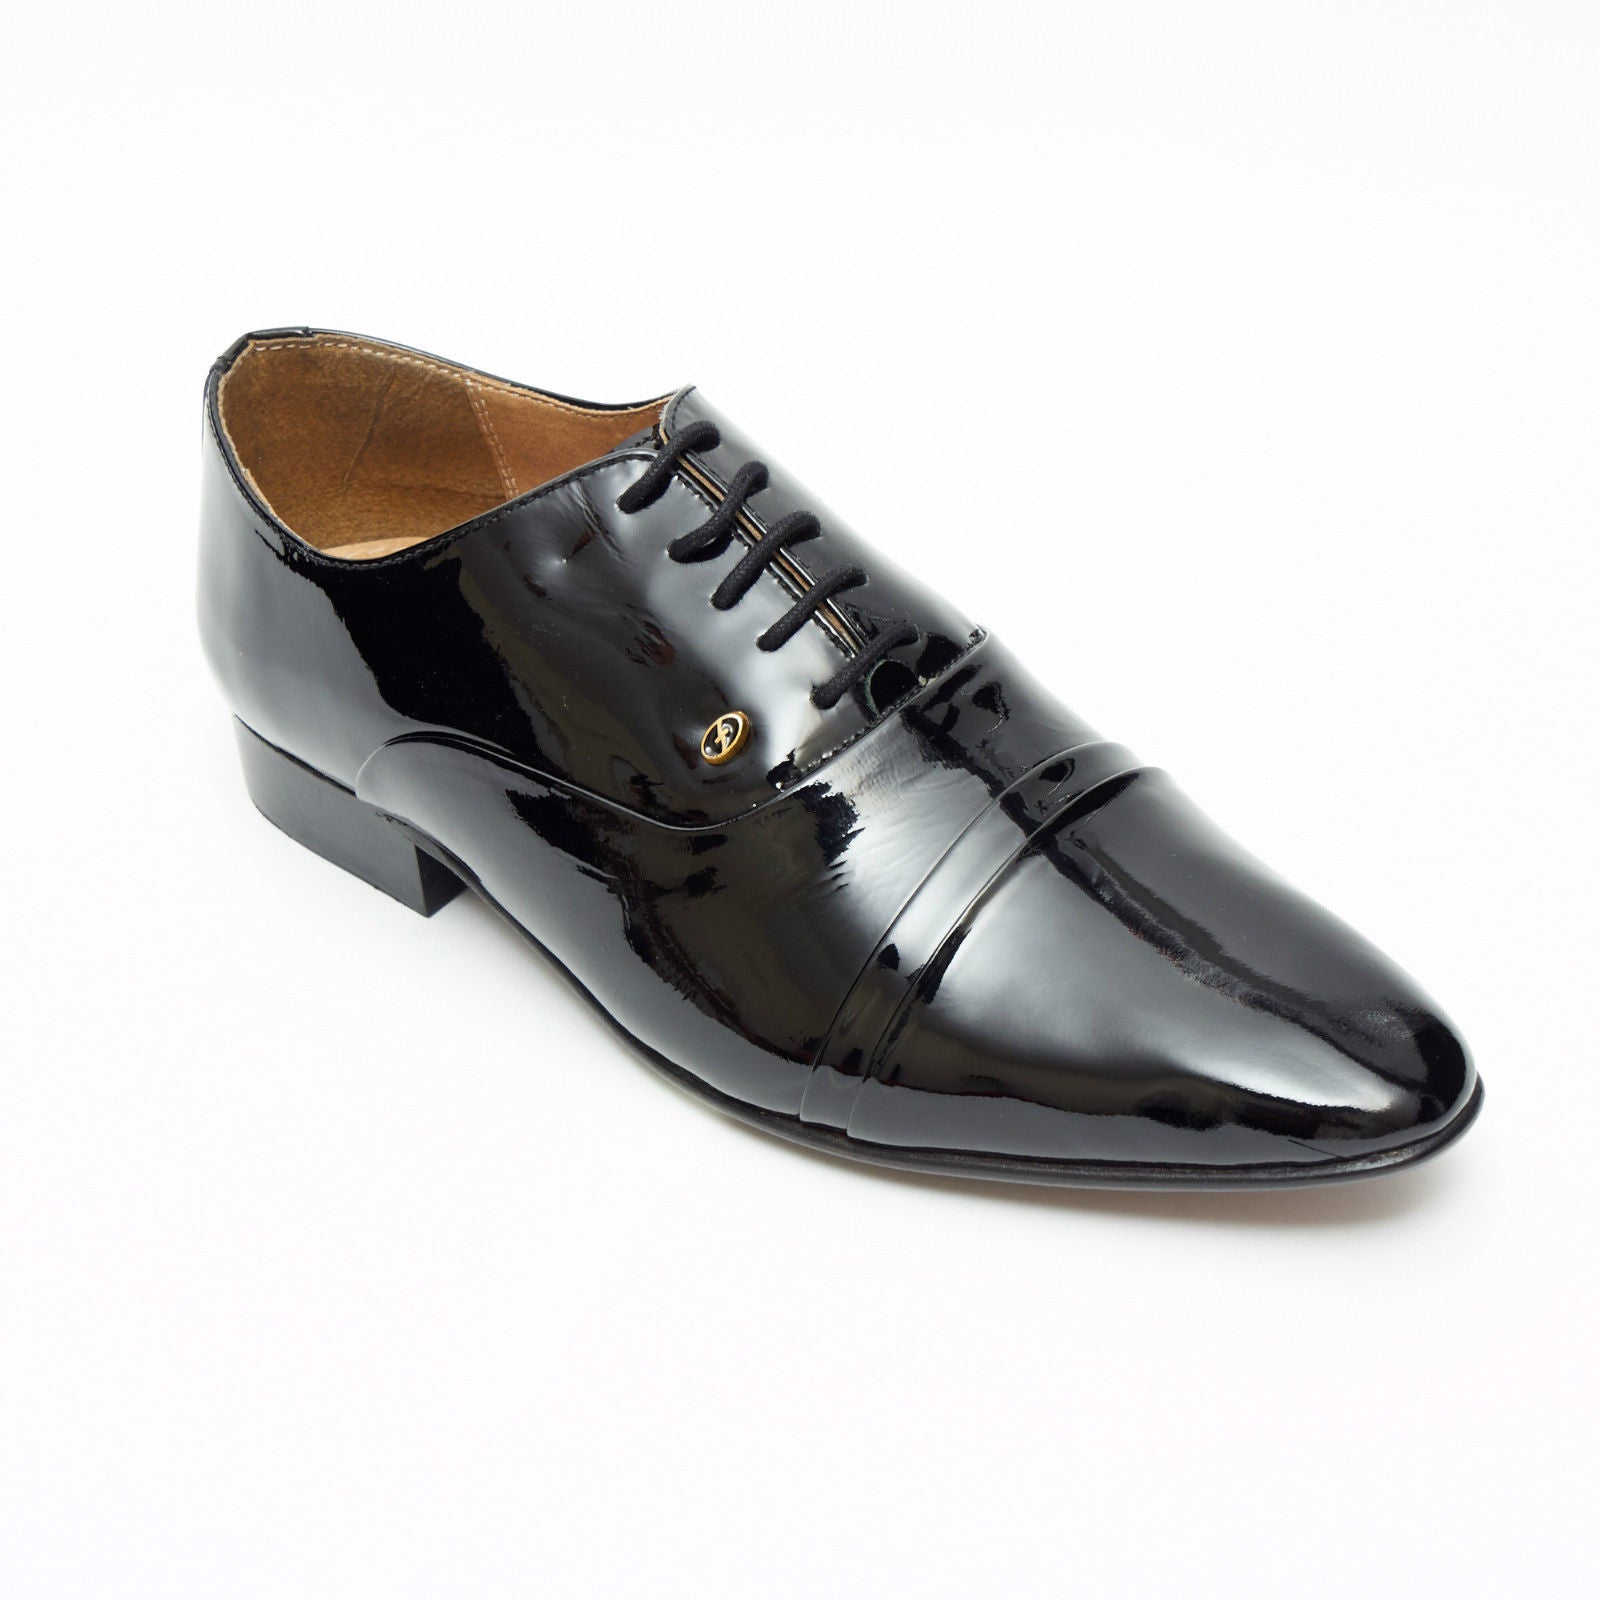 Mens Leather Spanish Shoes Patent - 33451